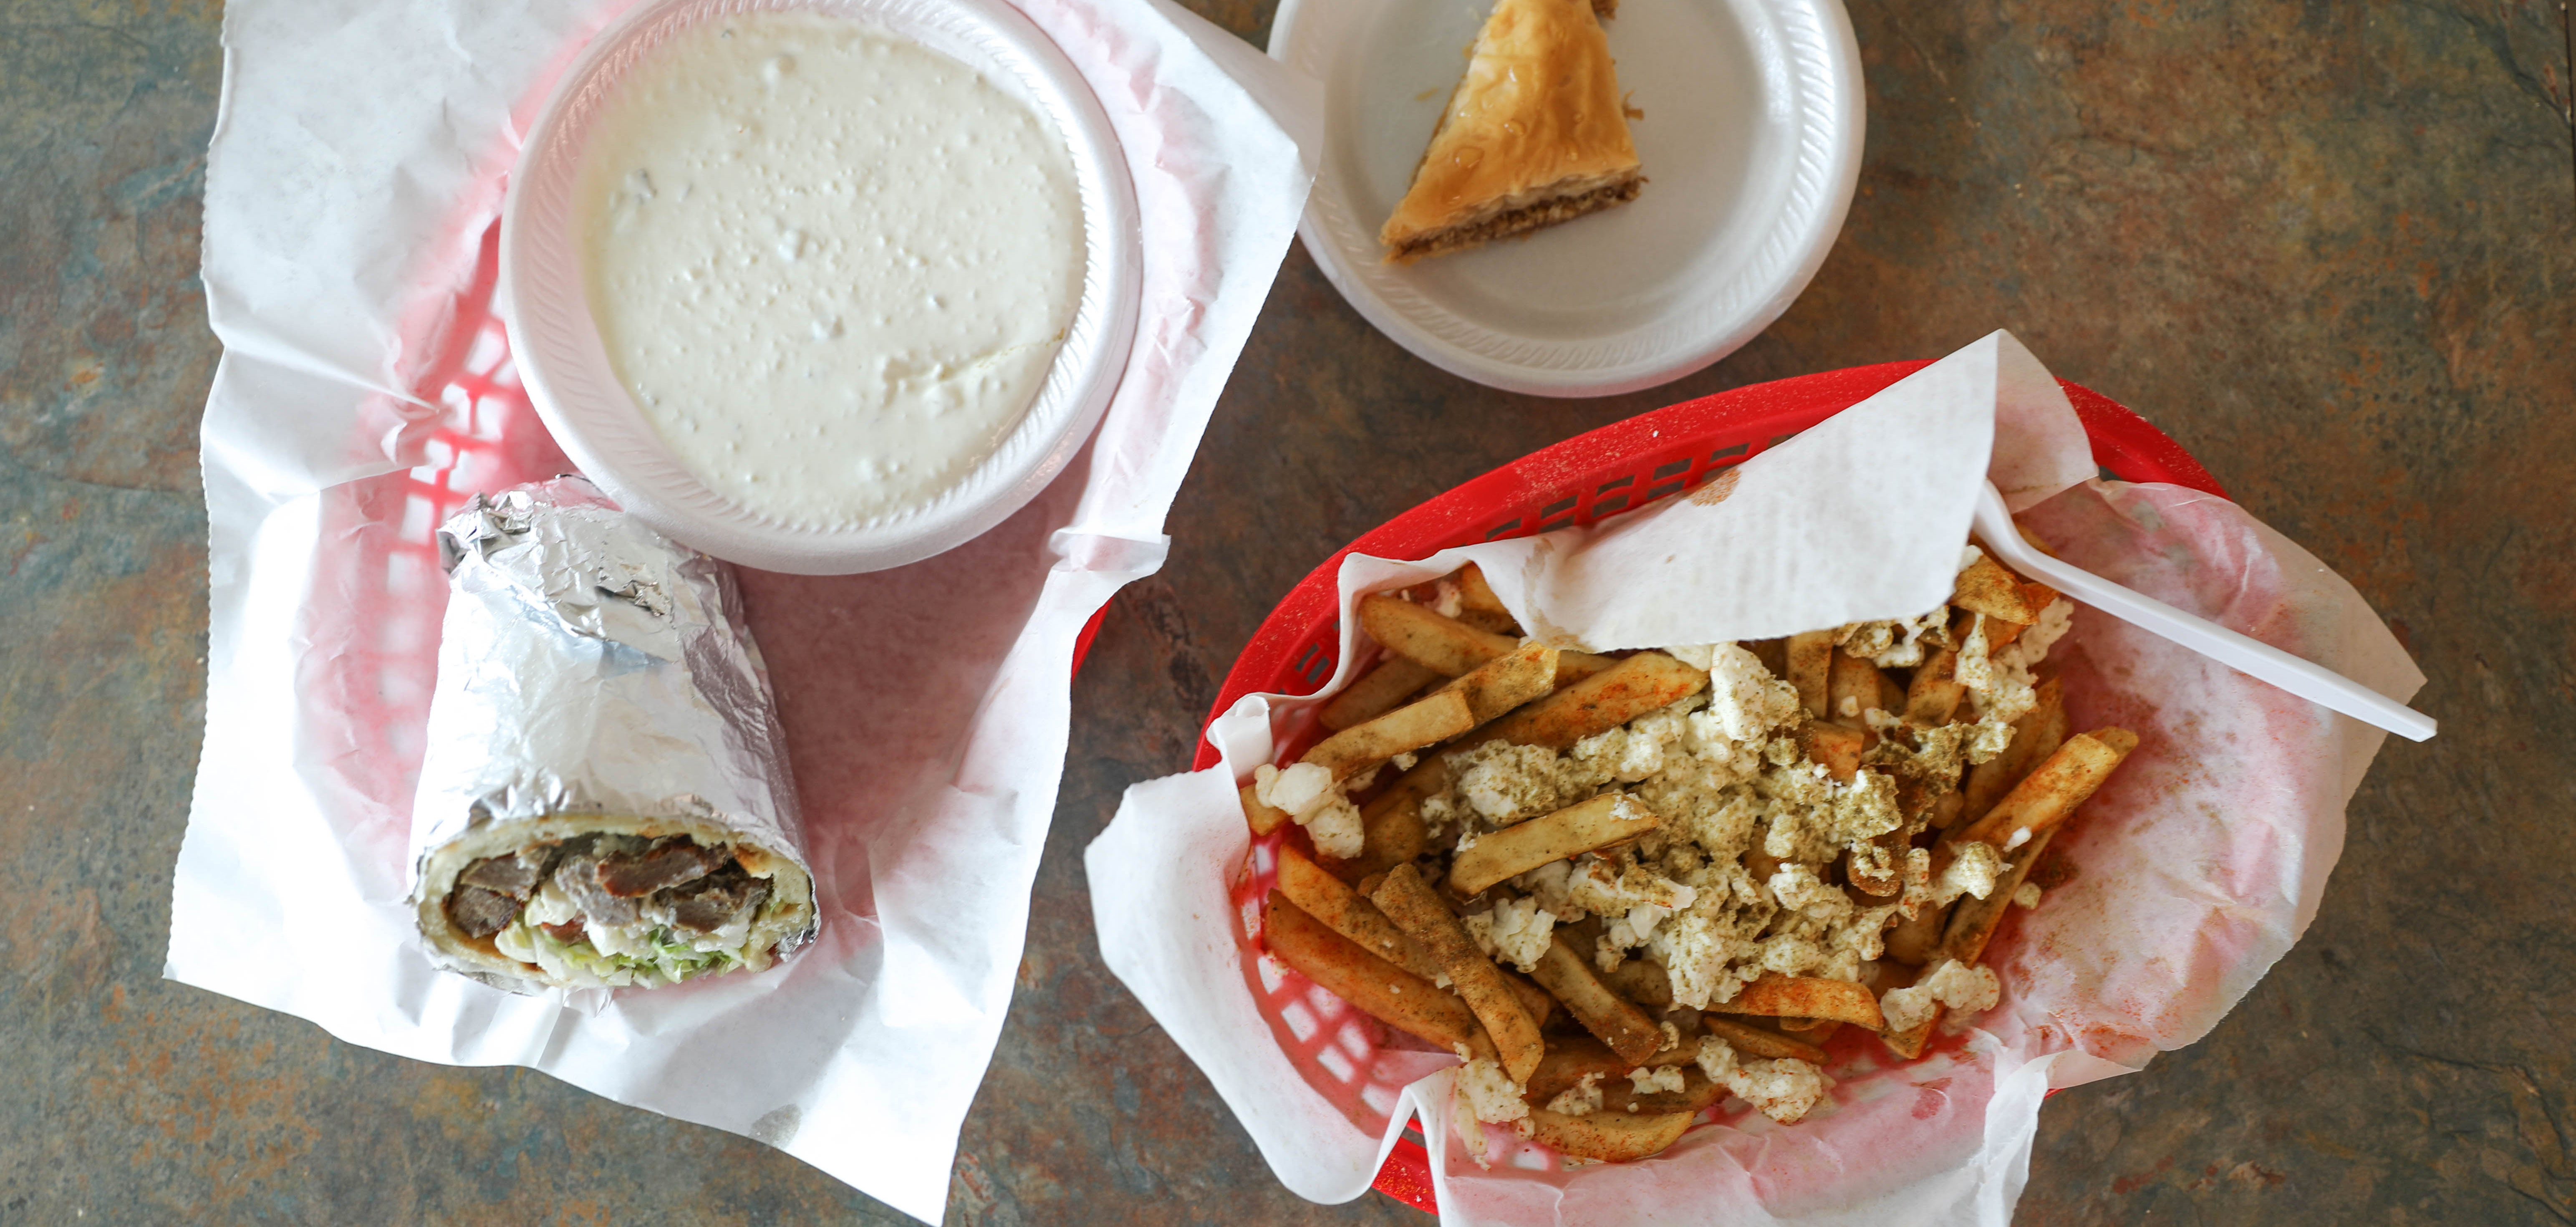 A gyro, baklava, and Greek fries topped with feta chese at Gyro Palace in East Tulsa.